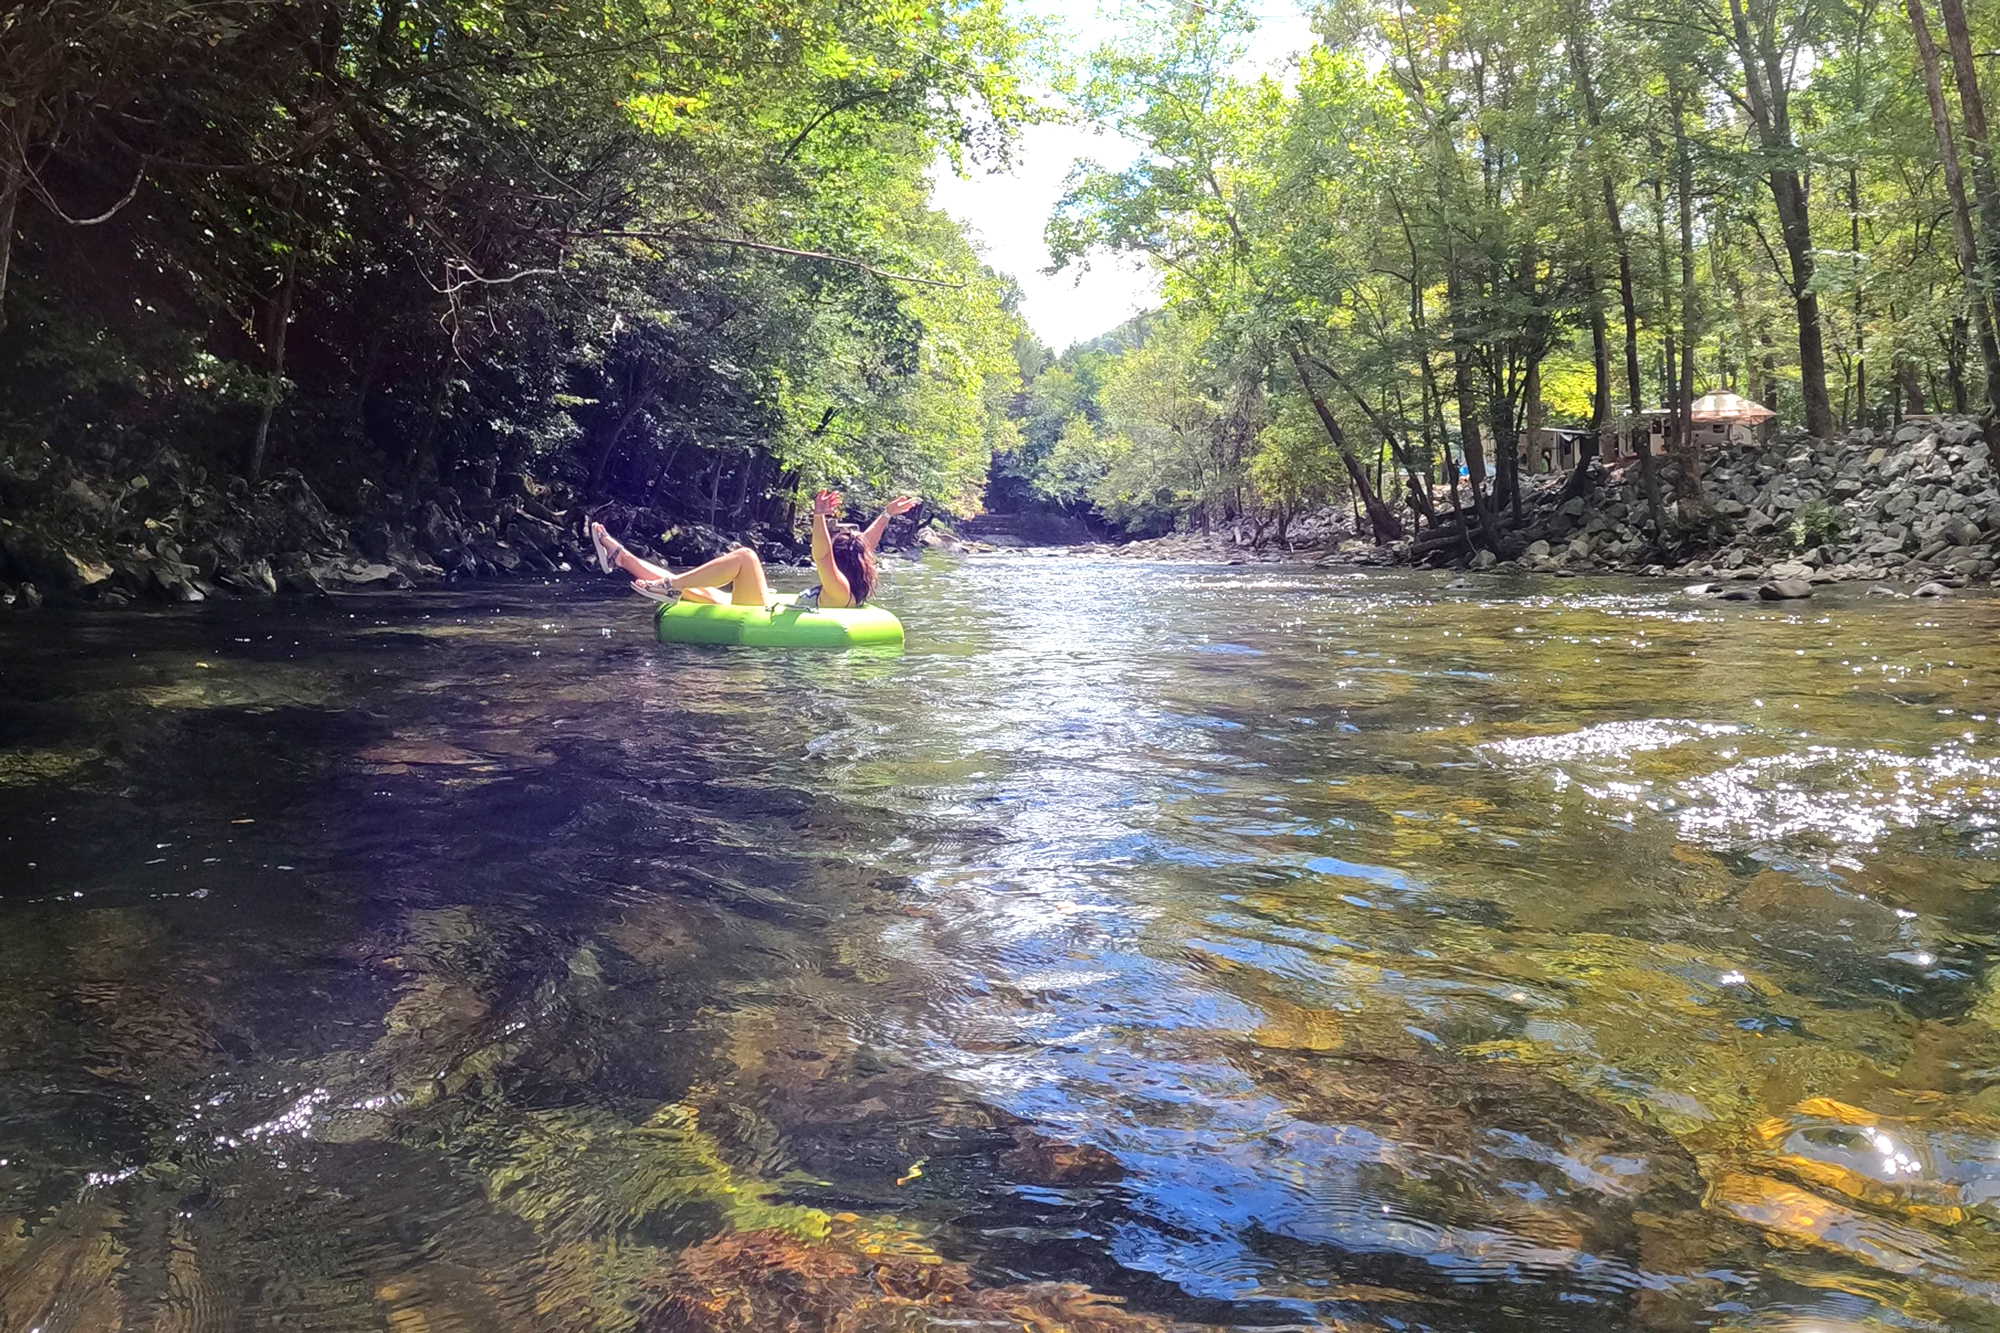 Tubing on the Little River is one of the best things to do in townsend tn